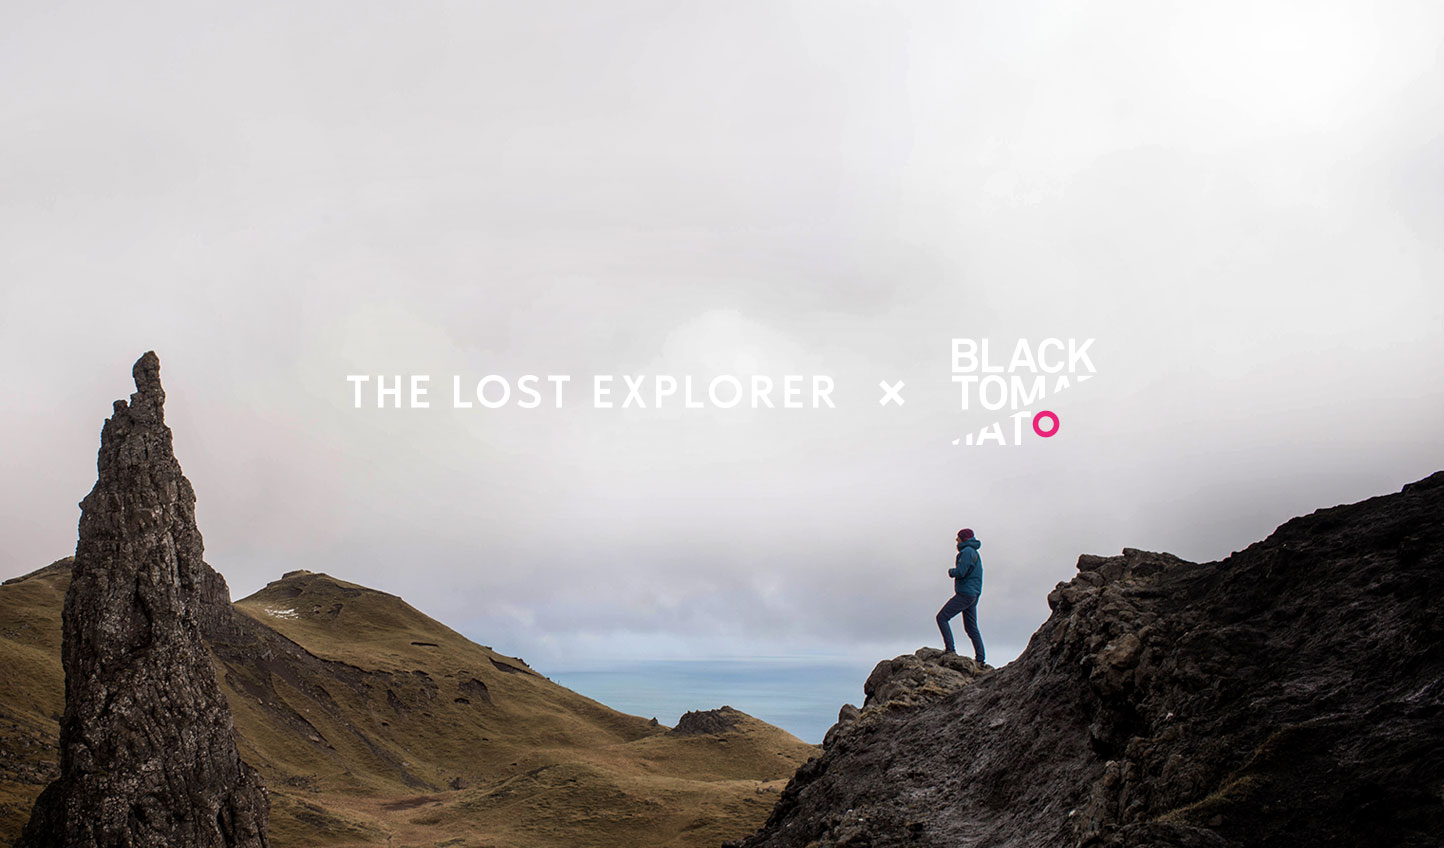 The Lost Explorer partnership launches